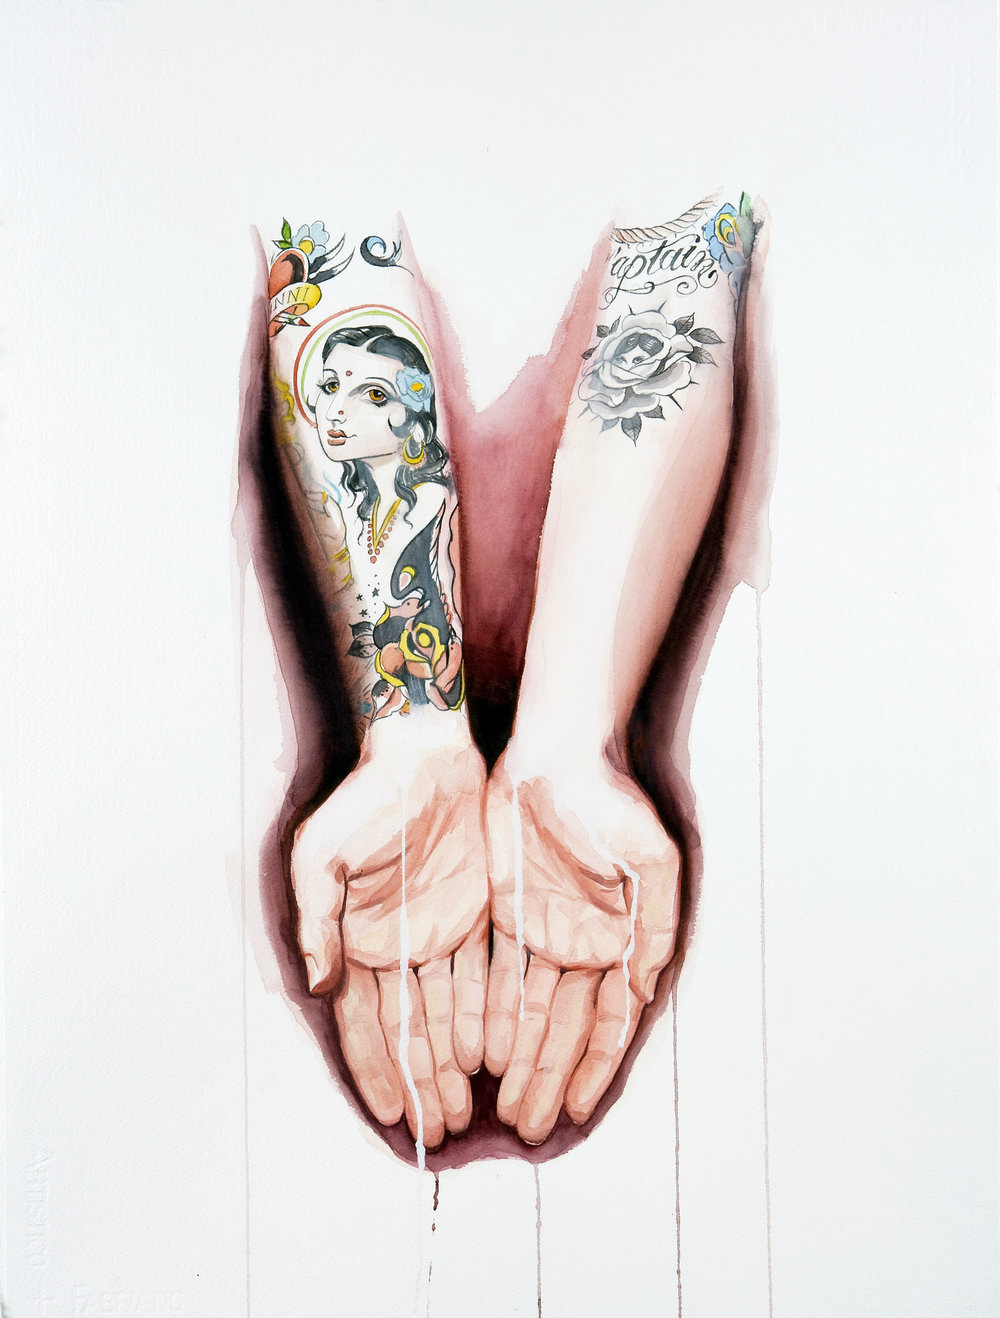 "'Marco Ceretelli Hands Study', watercolor and gouache on 300lb. Fabriano paper, 30"" x 22"", 2008, Private Collection"